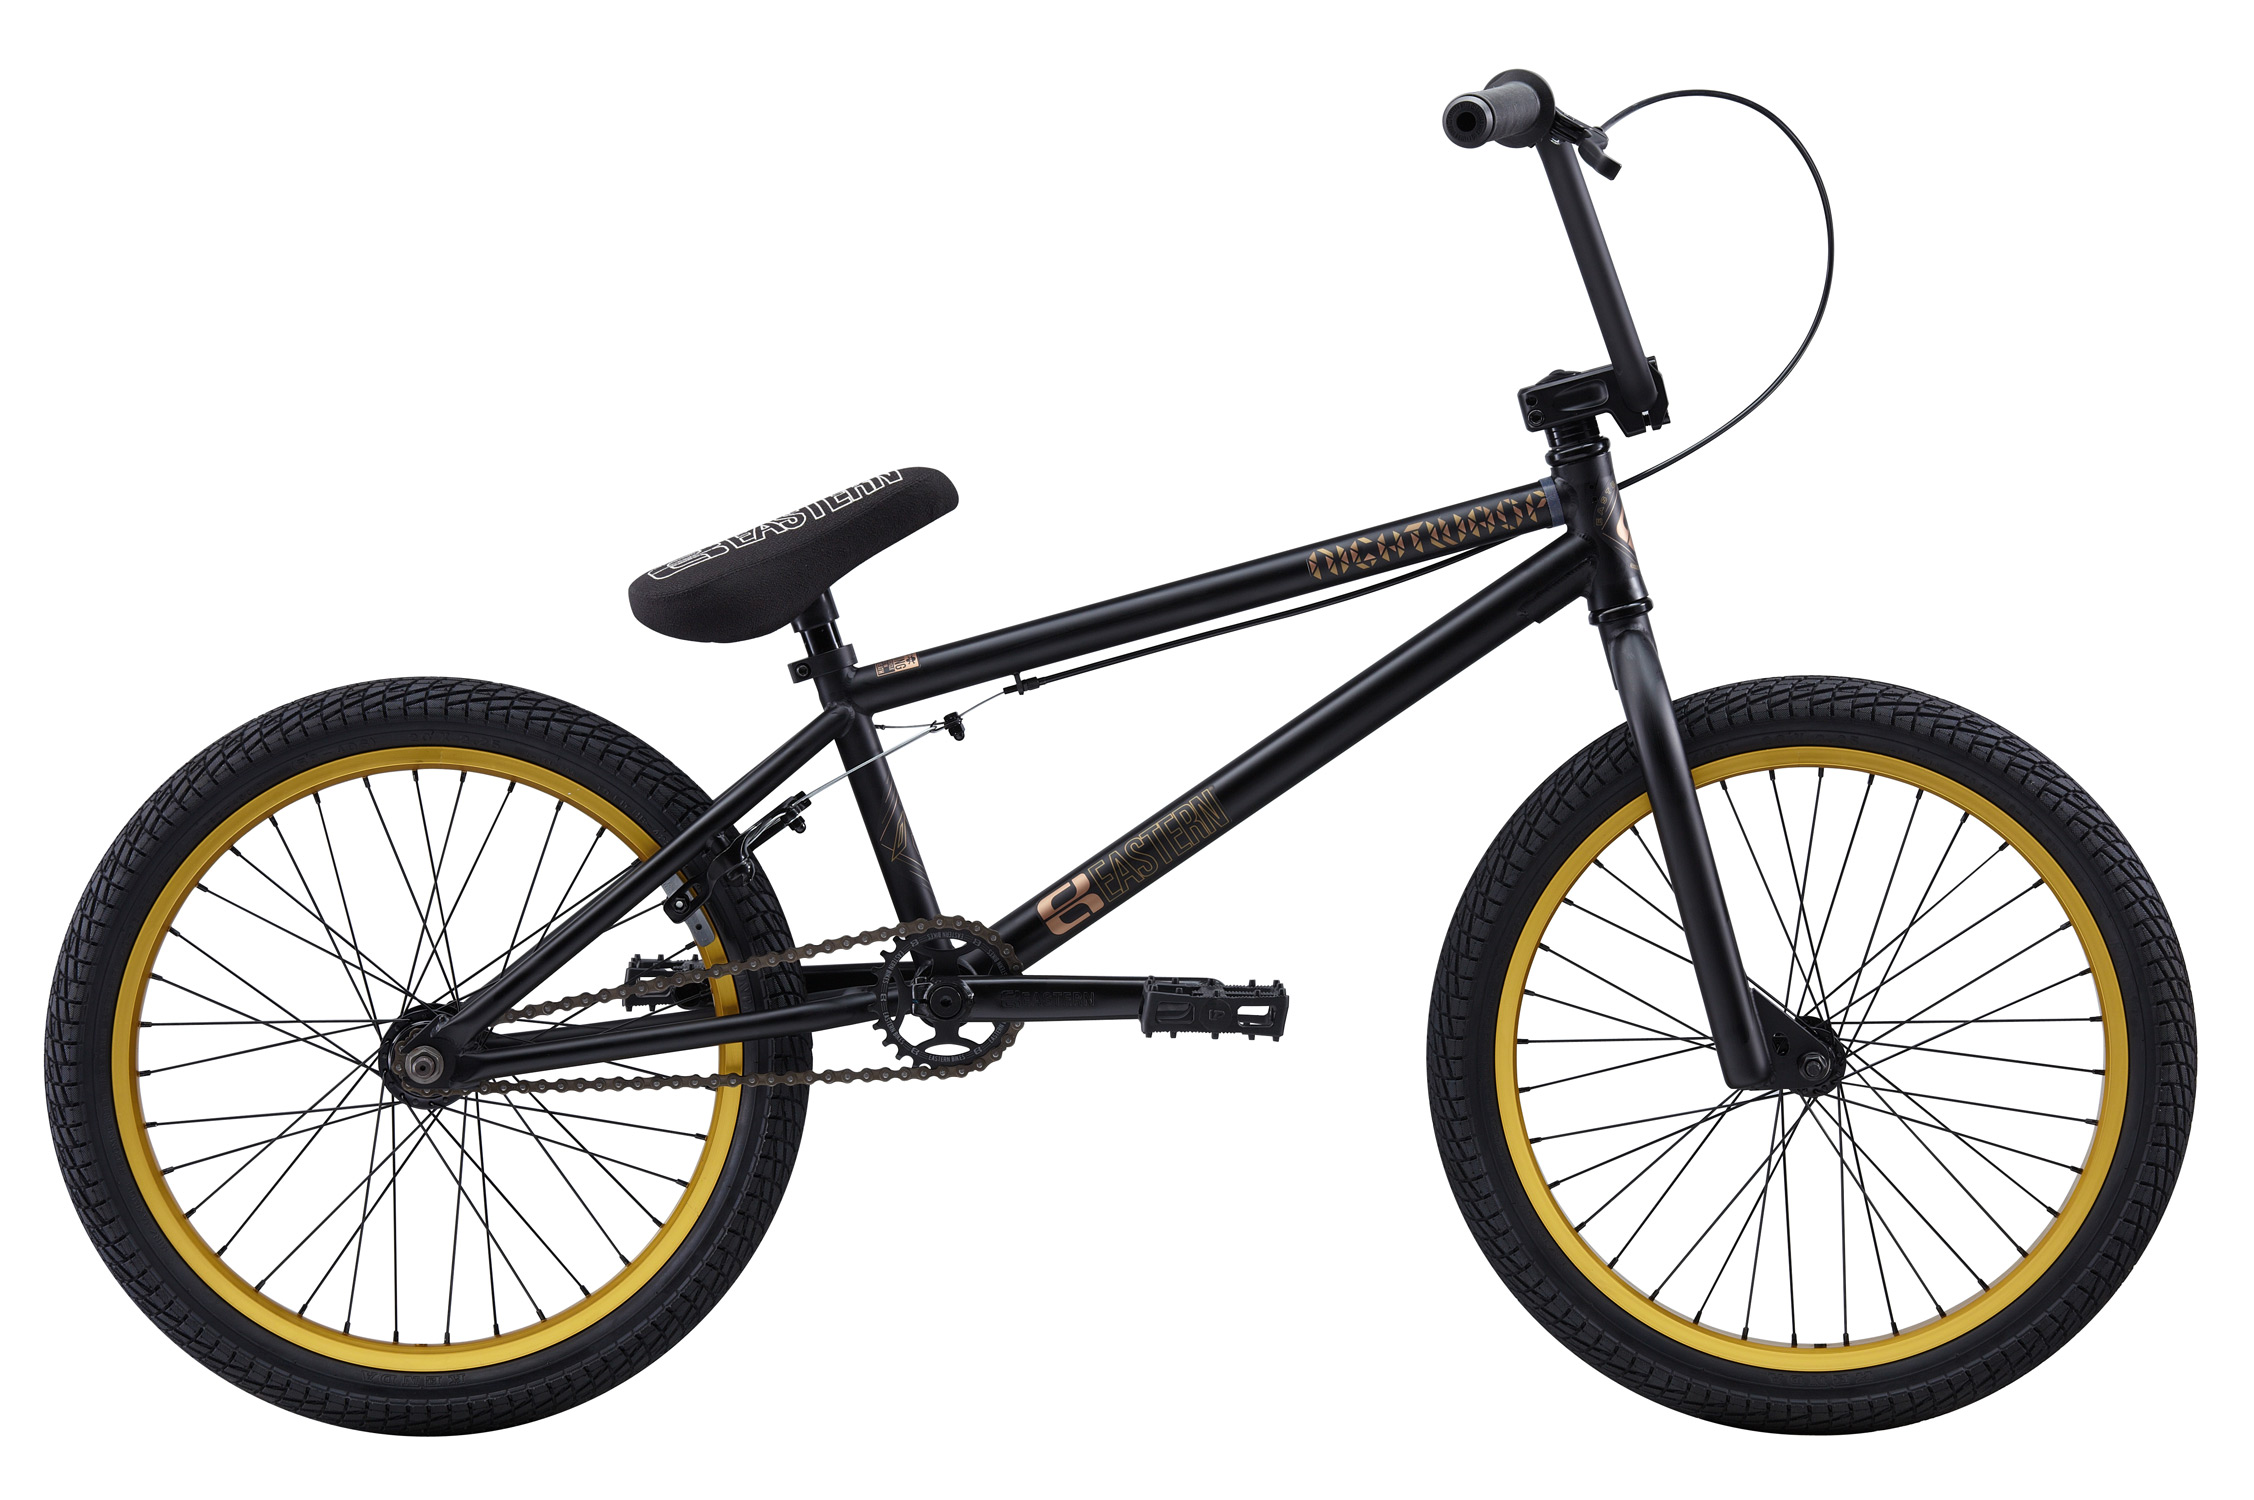 "BMX Key Features of the Eastern Nightwasp BMX Bike 20"": WEIGHT: 26.4 LBS TOP TUBE SIZE: 20.5"" COLORS: Matte Black/Red, Matte Black Gold GEARING: 25/9 Micro-drive FRAME: Nightwasp Hi-Tensile Strength 1020 Steel Frame. Eastern Promise: lifetime warranty, lifetime upgrade policy FORK: Nightwasp Hi-Tensile Strength 1020 Steel BARS: 8.25""x 28.5"" , 1º Upsweep, 12º Backsweep HEADSET: 1-1/8"" Aheadset BB: Sealed Bearing, Mid Bottom Bracket PEDALS: VP Components Plastic Platform Pedals GRIPS: Velo Mushroom Grip** STEM: Forged Alloy Front Load SPROCKET: Eastern Phorcys 25T steel CRANKS: Tubular chromoly heat-treated 3pc. cranks with 8 spline spindle SEAT: Eastern logo 1pc. seat and alloy post combo, Durable Nylon Cover, and Stitched Logo SEATPOST: Alloy post included with seat SEAT CLAMP: Nitrous Locker Forged Alloy Clamp TIRES: Multi-Surface ,20"" x 2.35"" ** FRONT HUB: Sealed Bearing, 36 hole Alloy Shell, 3/8"" Chromoly axle REAR HUB: Fully Sealed 36 hole cassette hub, Forged Alloy Shell, 1pc. 9-tooth chromoly driver, 14mm chromoly axle, 5 sealed bearings. RIMS: REAR-Double Wall Alloy, 36 Hole FRONT- Alloy 36 hole REAR BRAKES: Tektro Forged Alloy U-Brake /Straight Cable / Forged Alloy lever, Designed for U-Brakes FREEWHEEL: Sealed bearing 9-tooth 1pc. driver CHAIN: KMC PEGS: 2 pegs - $359.99"